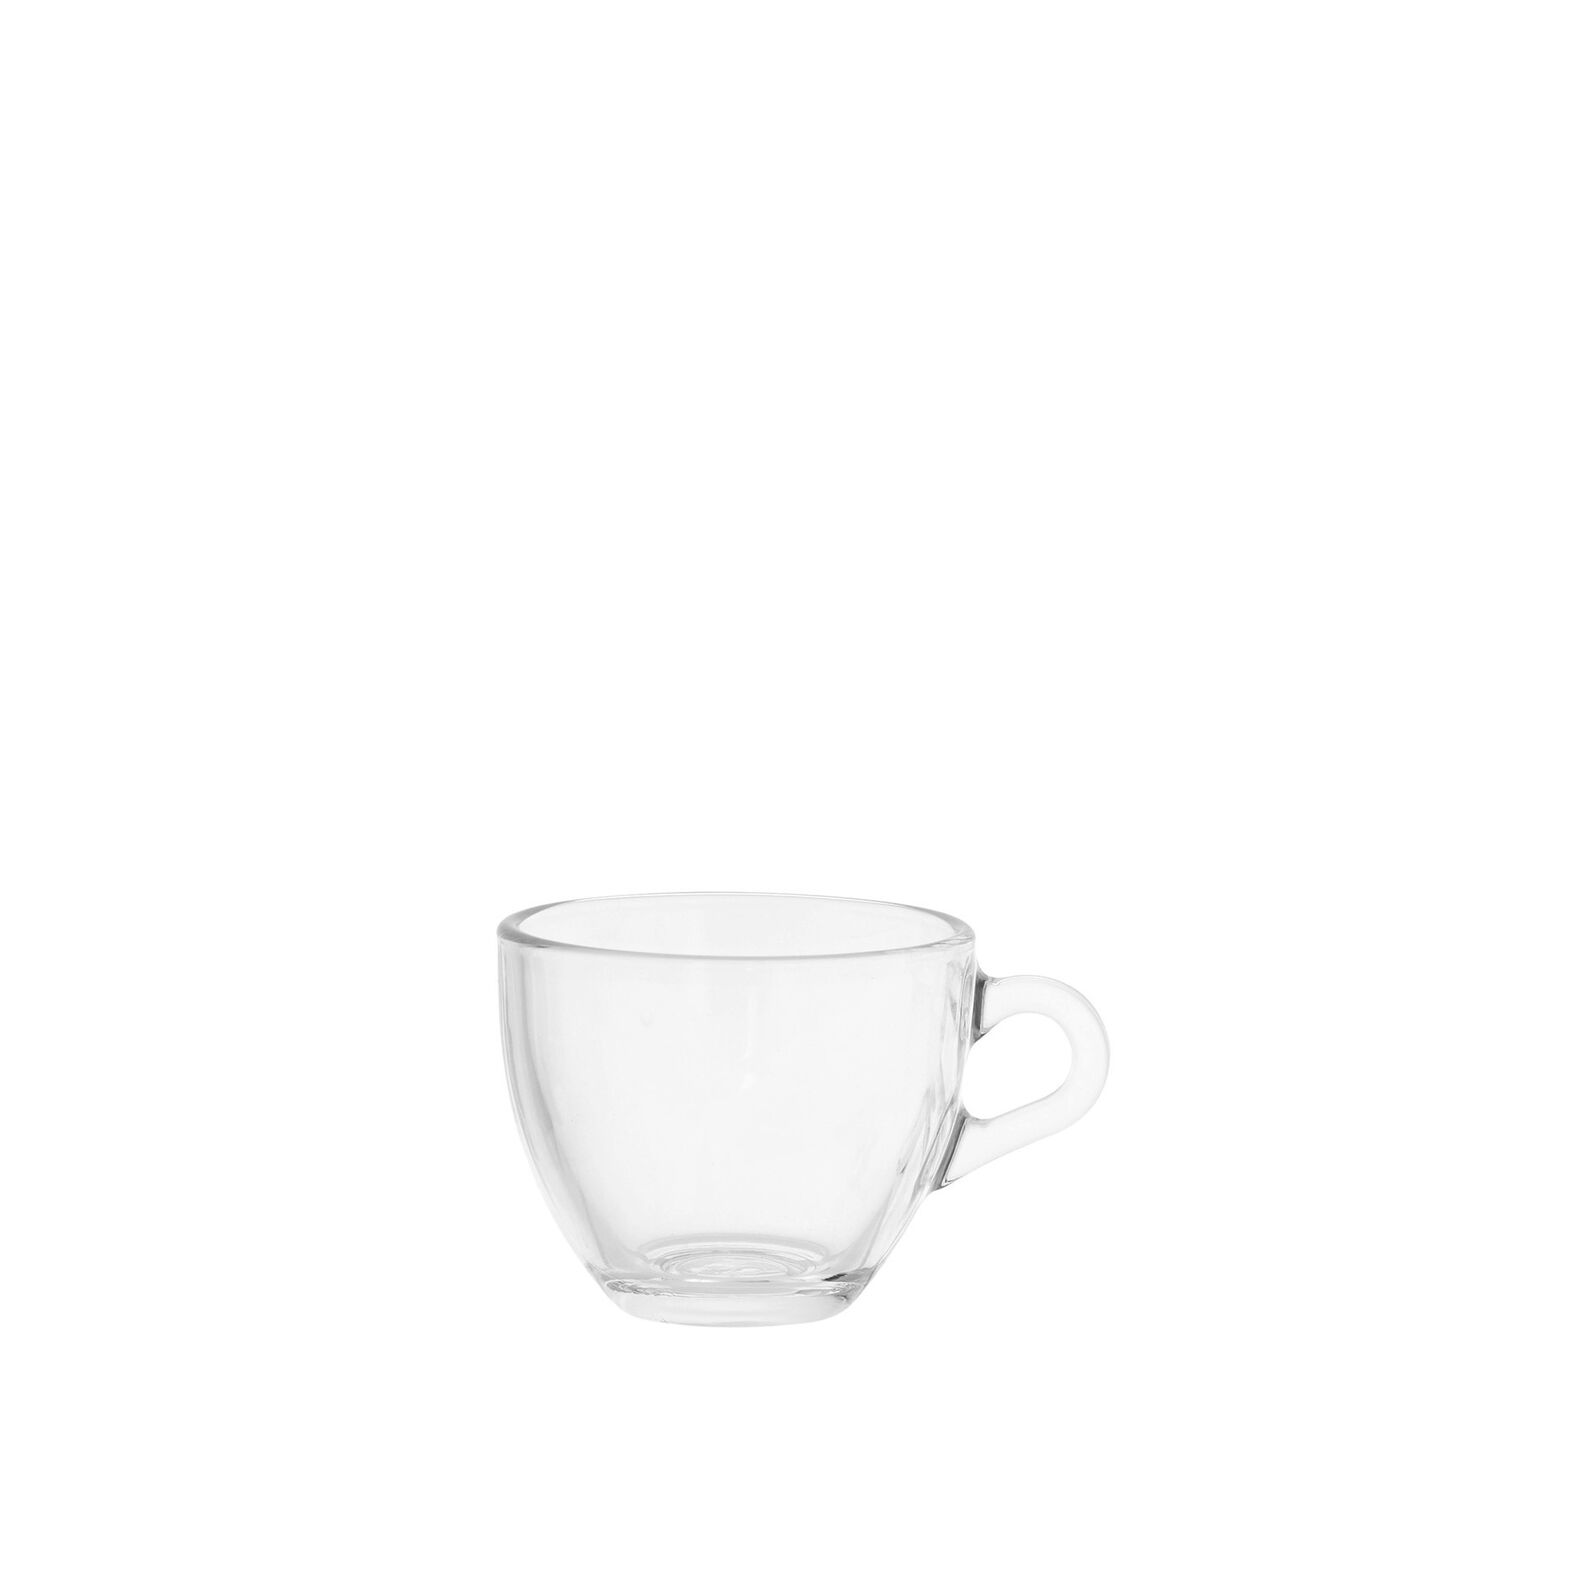 Clear glass coffee cup